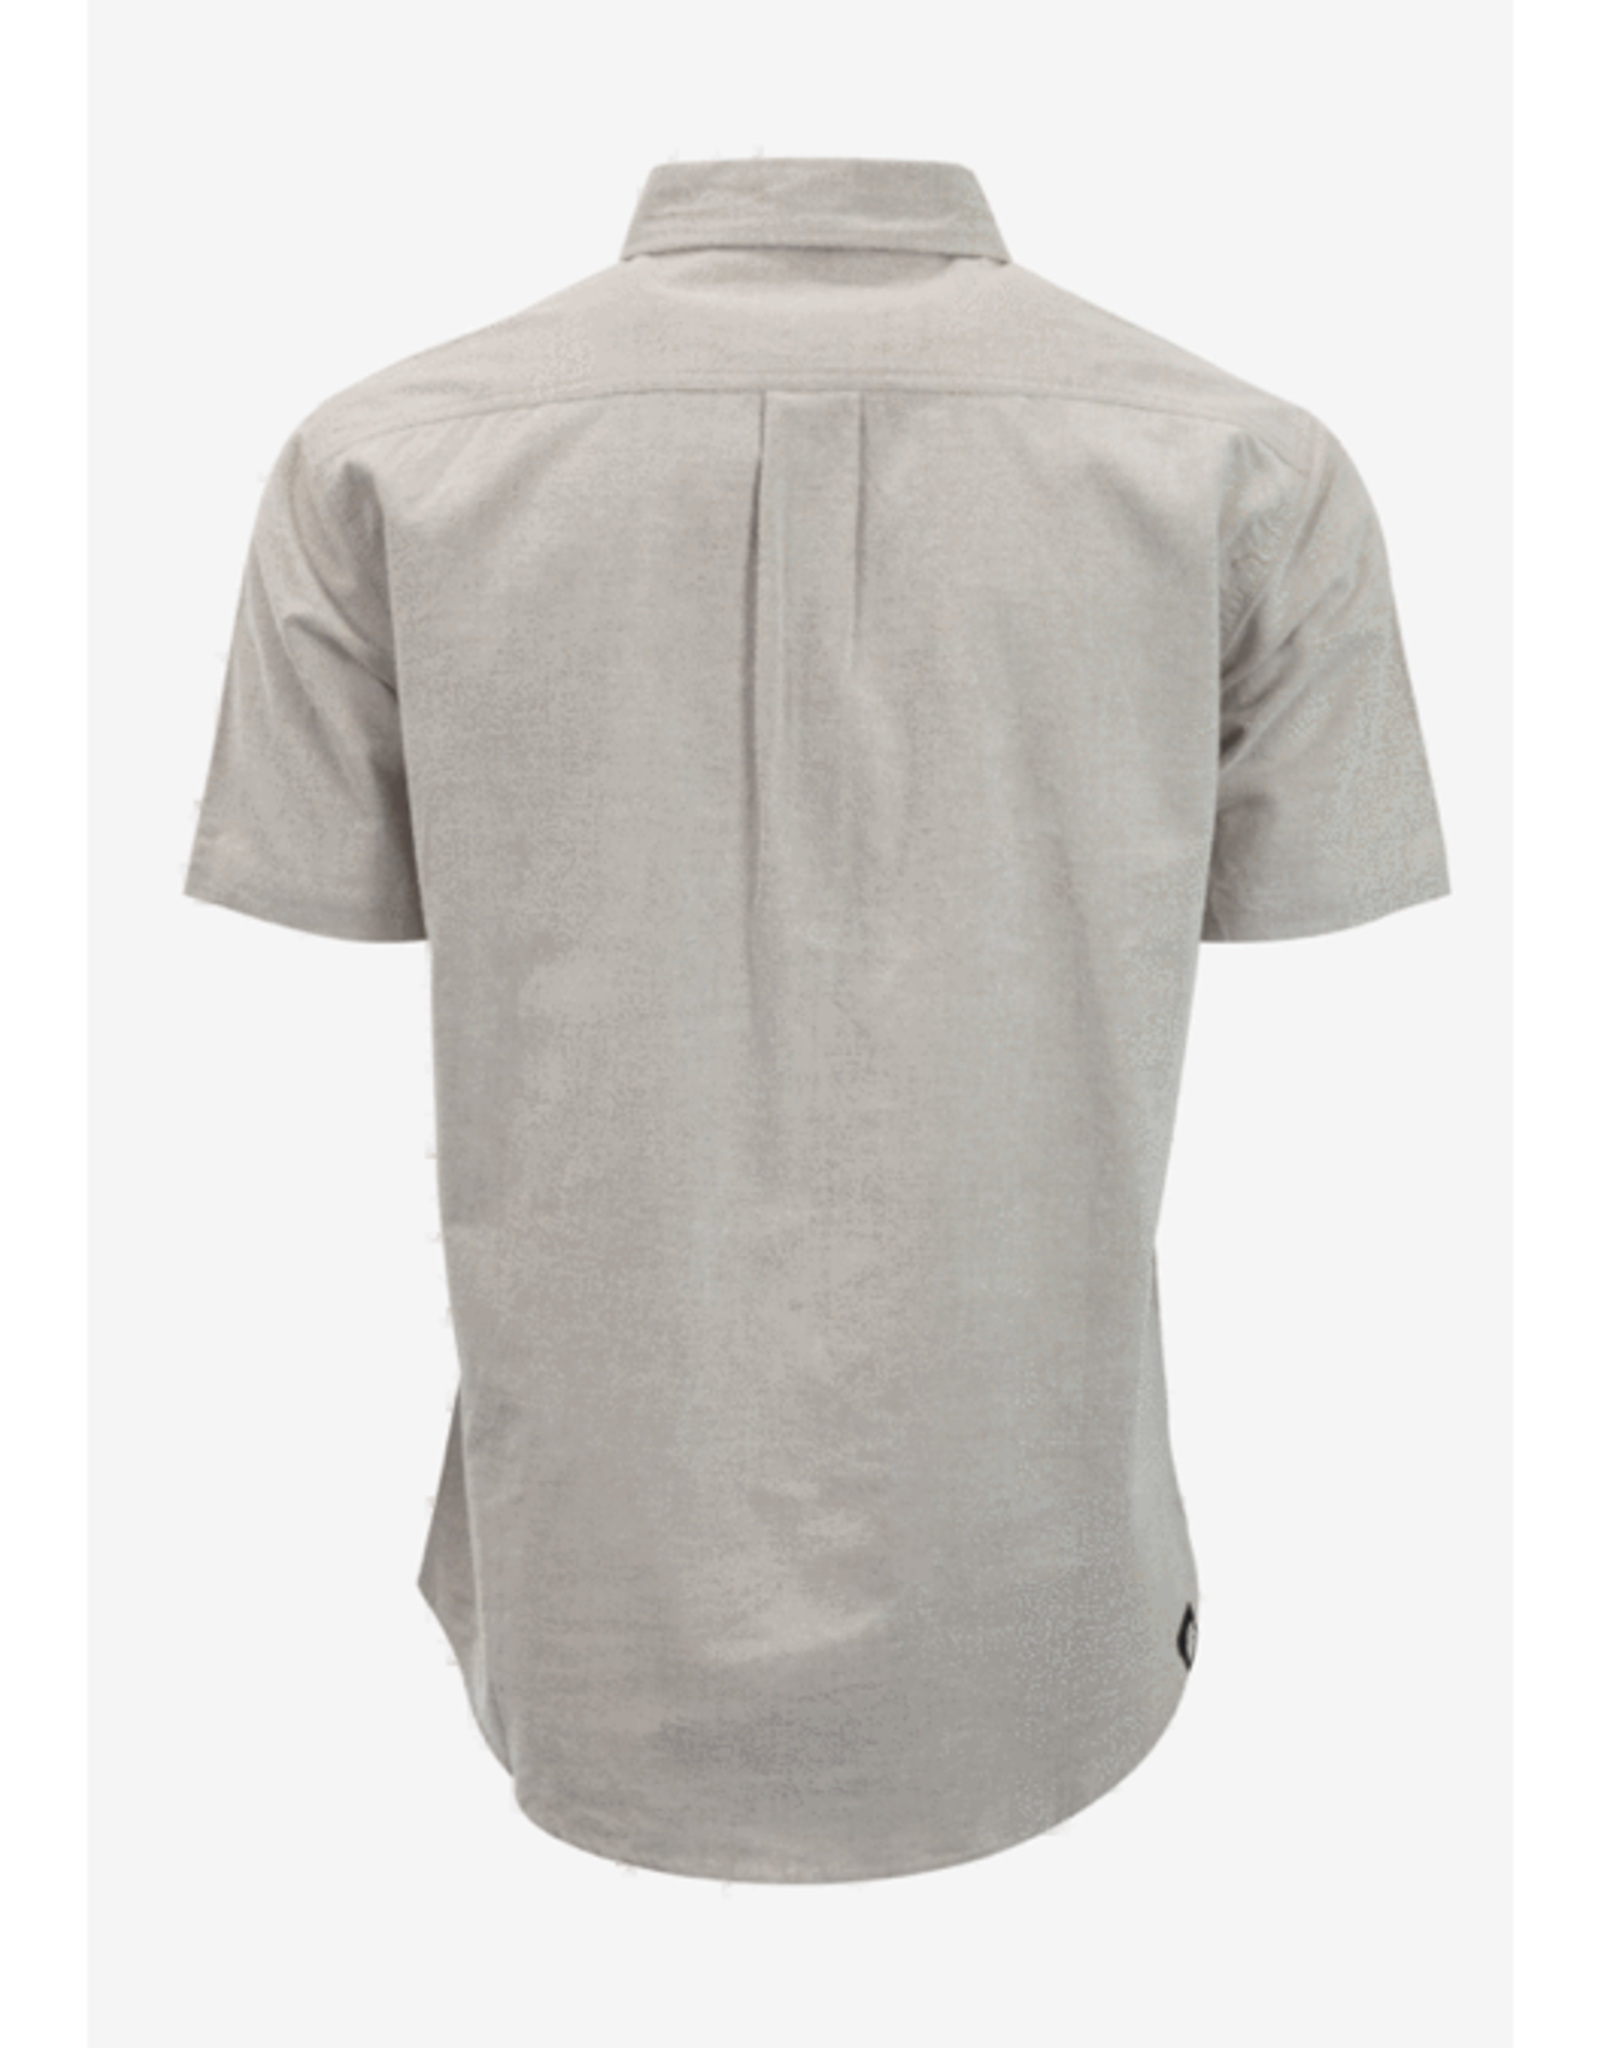 M Lee's Way Woven Button Down